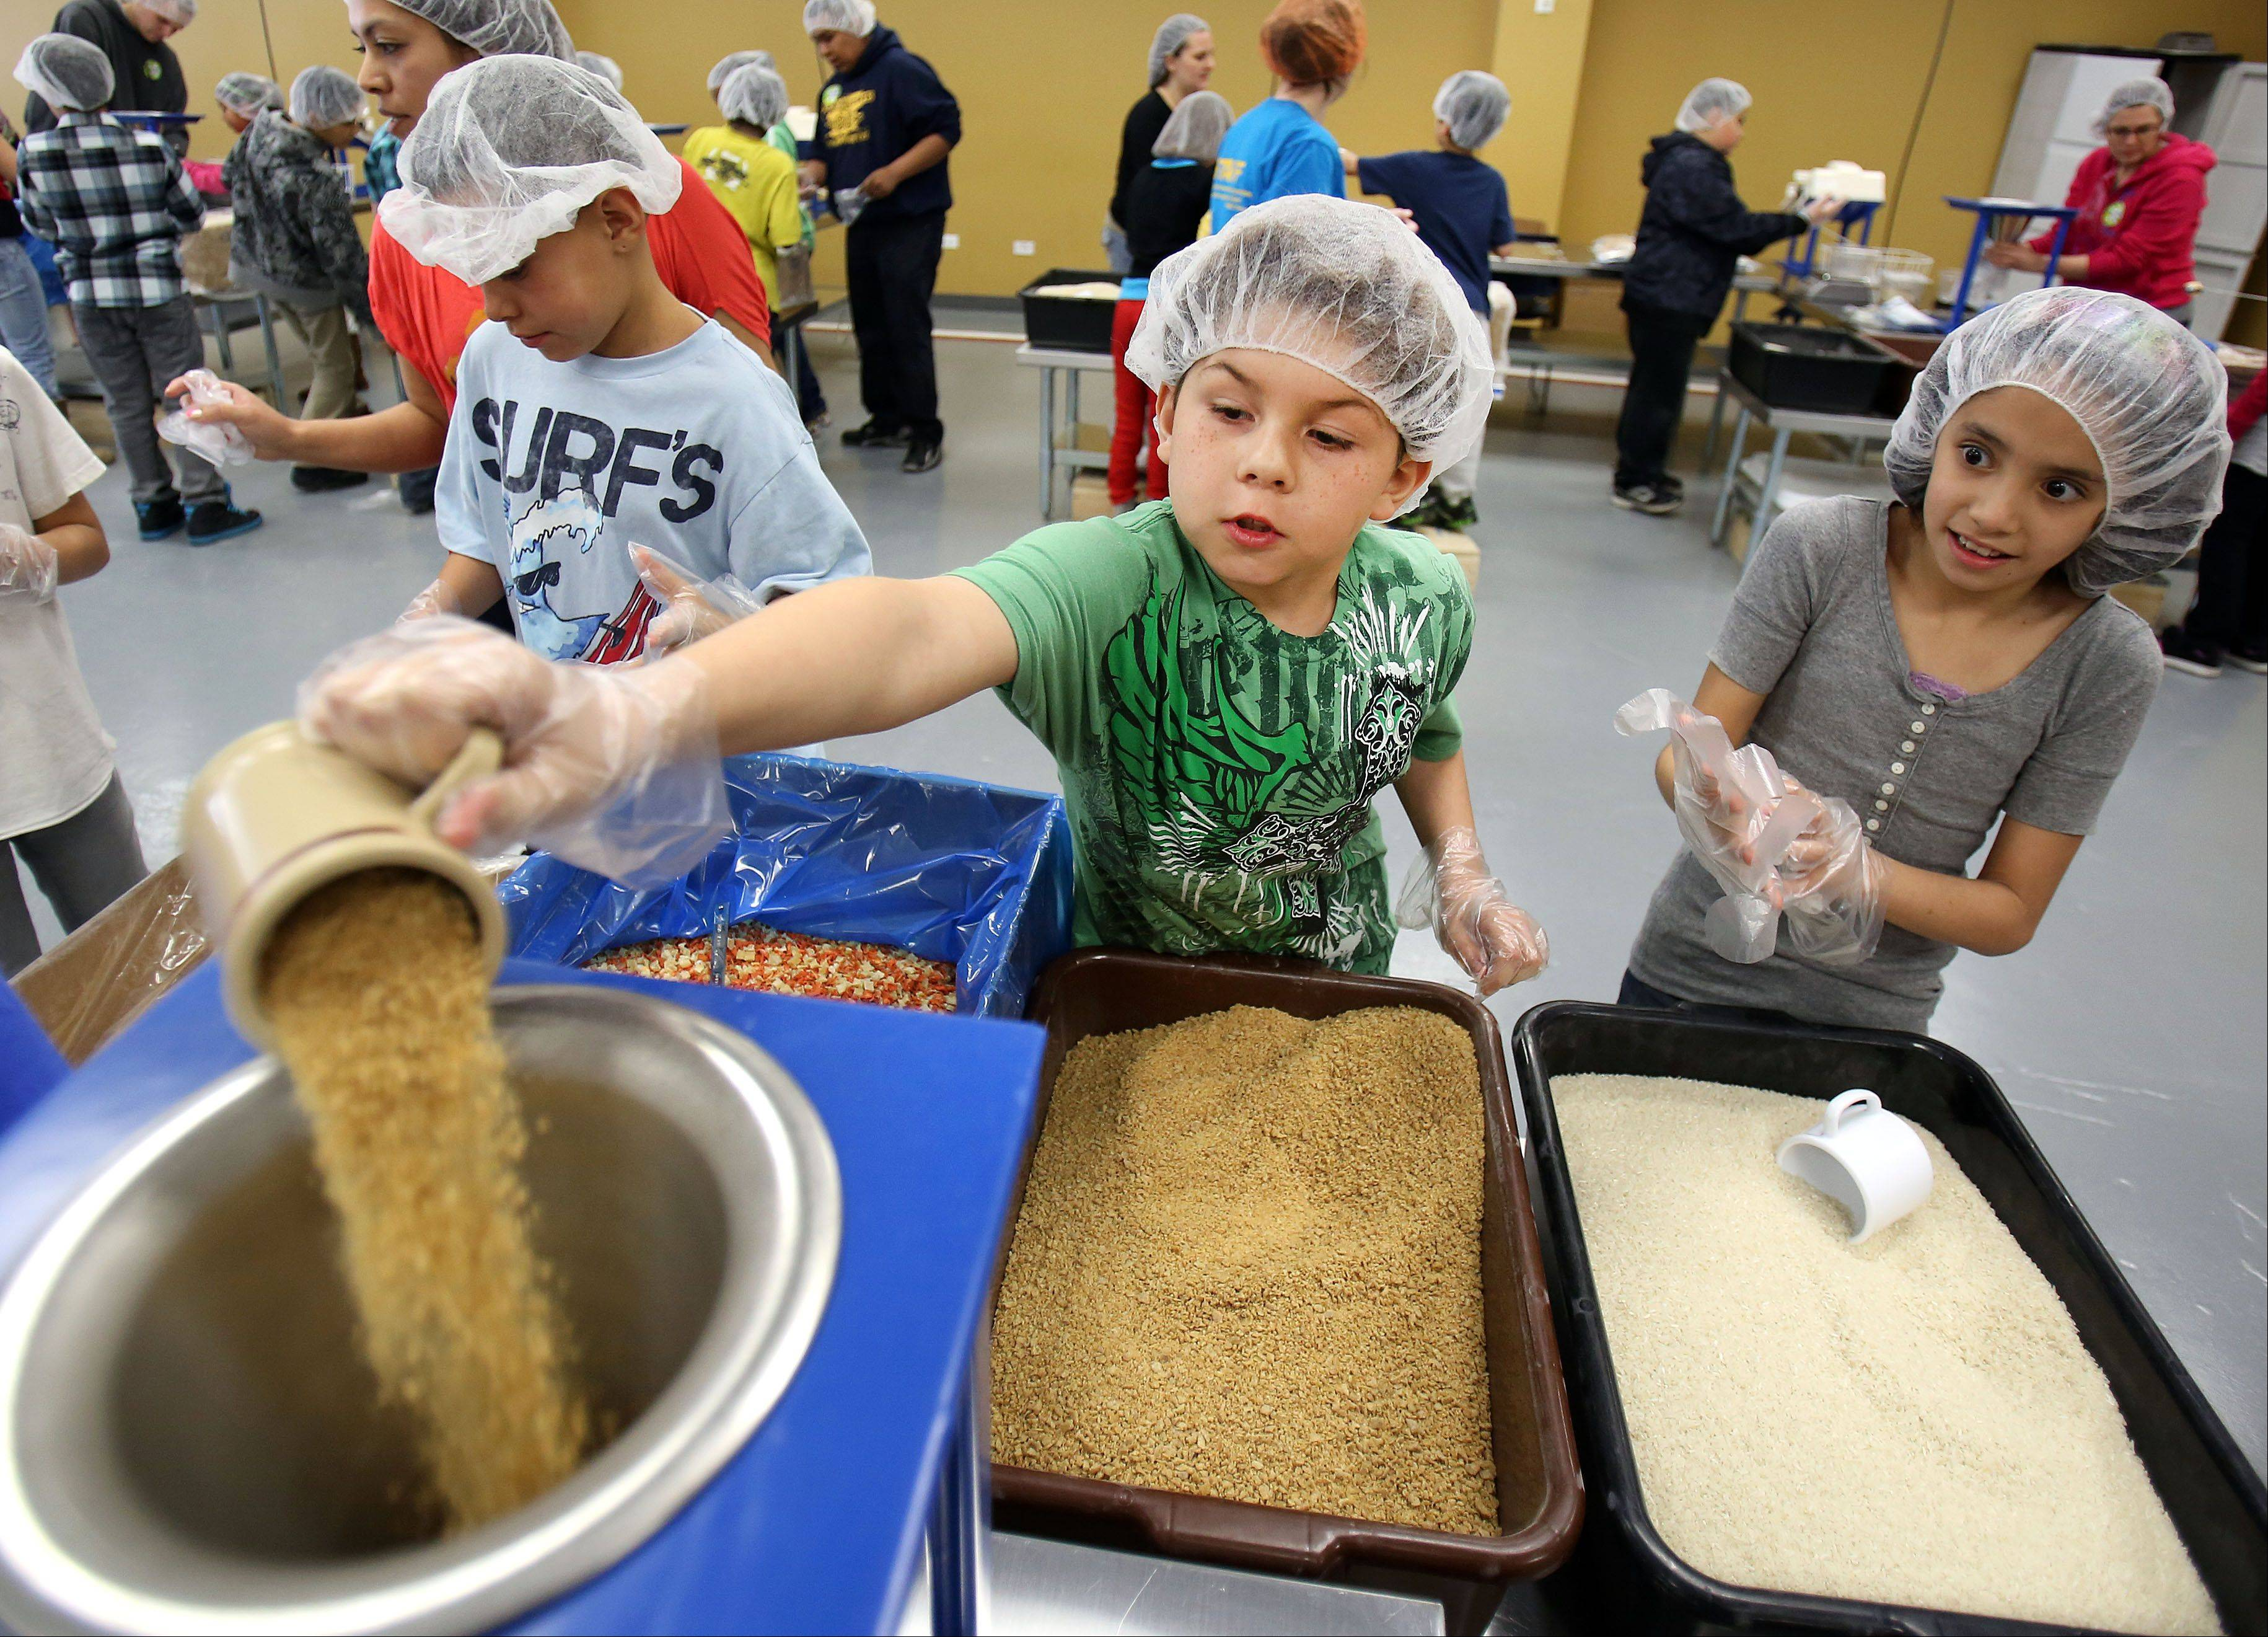 4th grader student Chris Rosado from W.J. Murphy School in Round Lake helps make meals at Feed My Starving Children in Libertyville Thursday. About 100 fourth graders and parents participated.